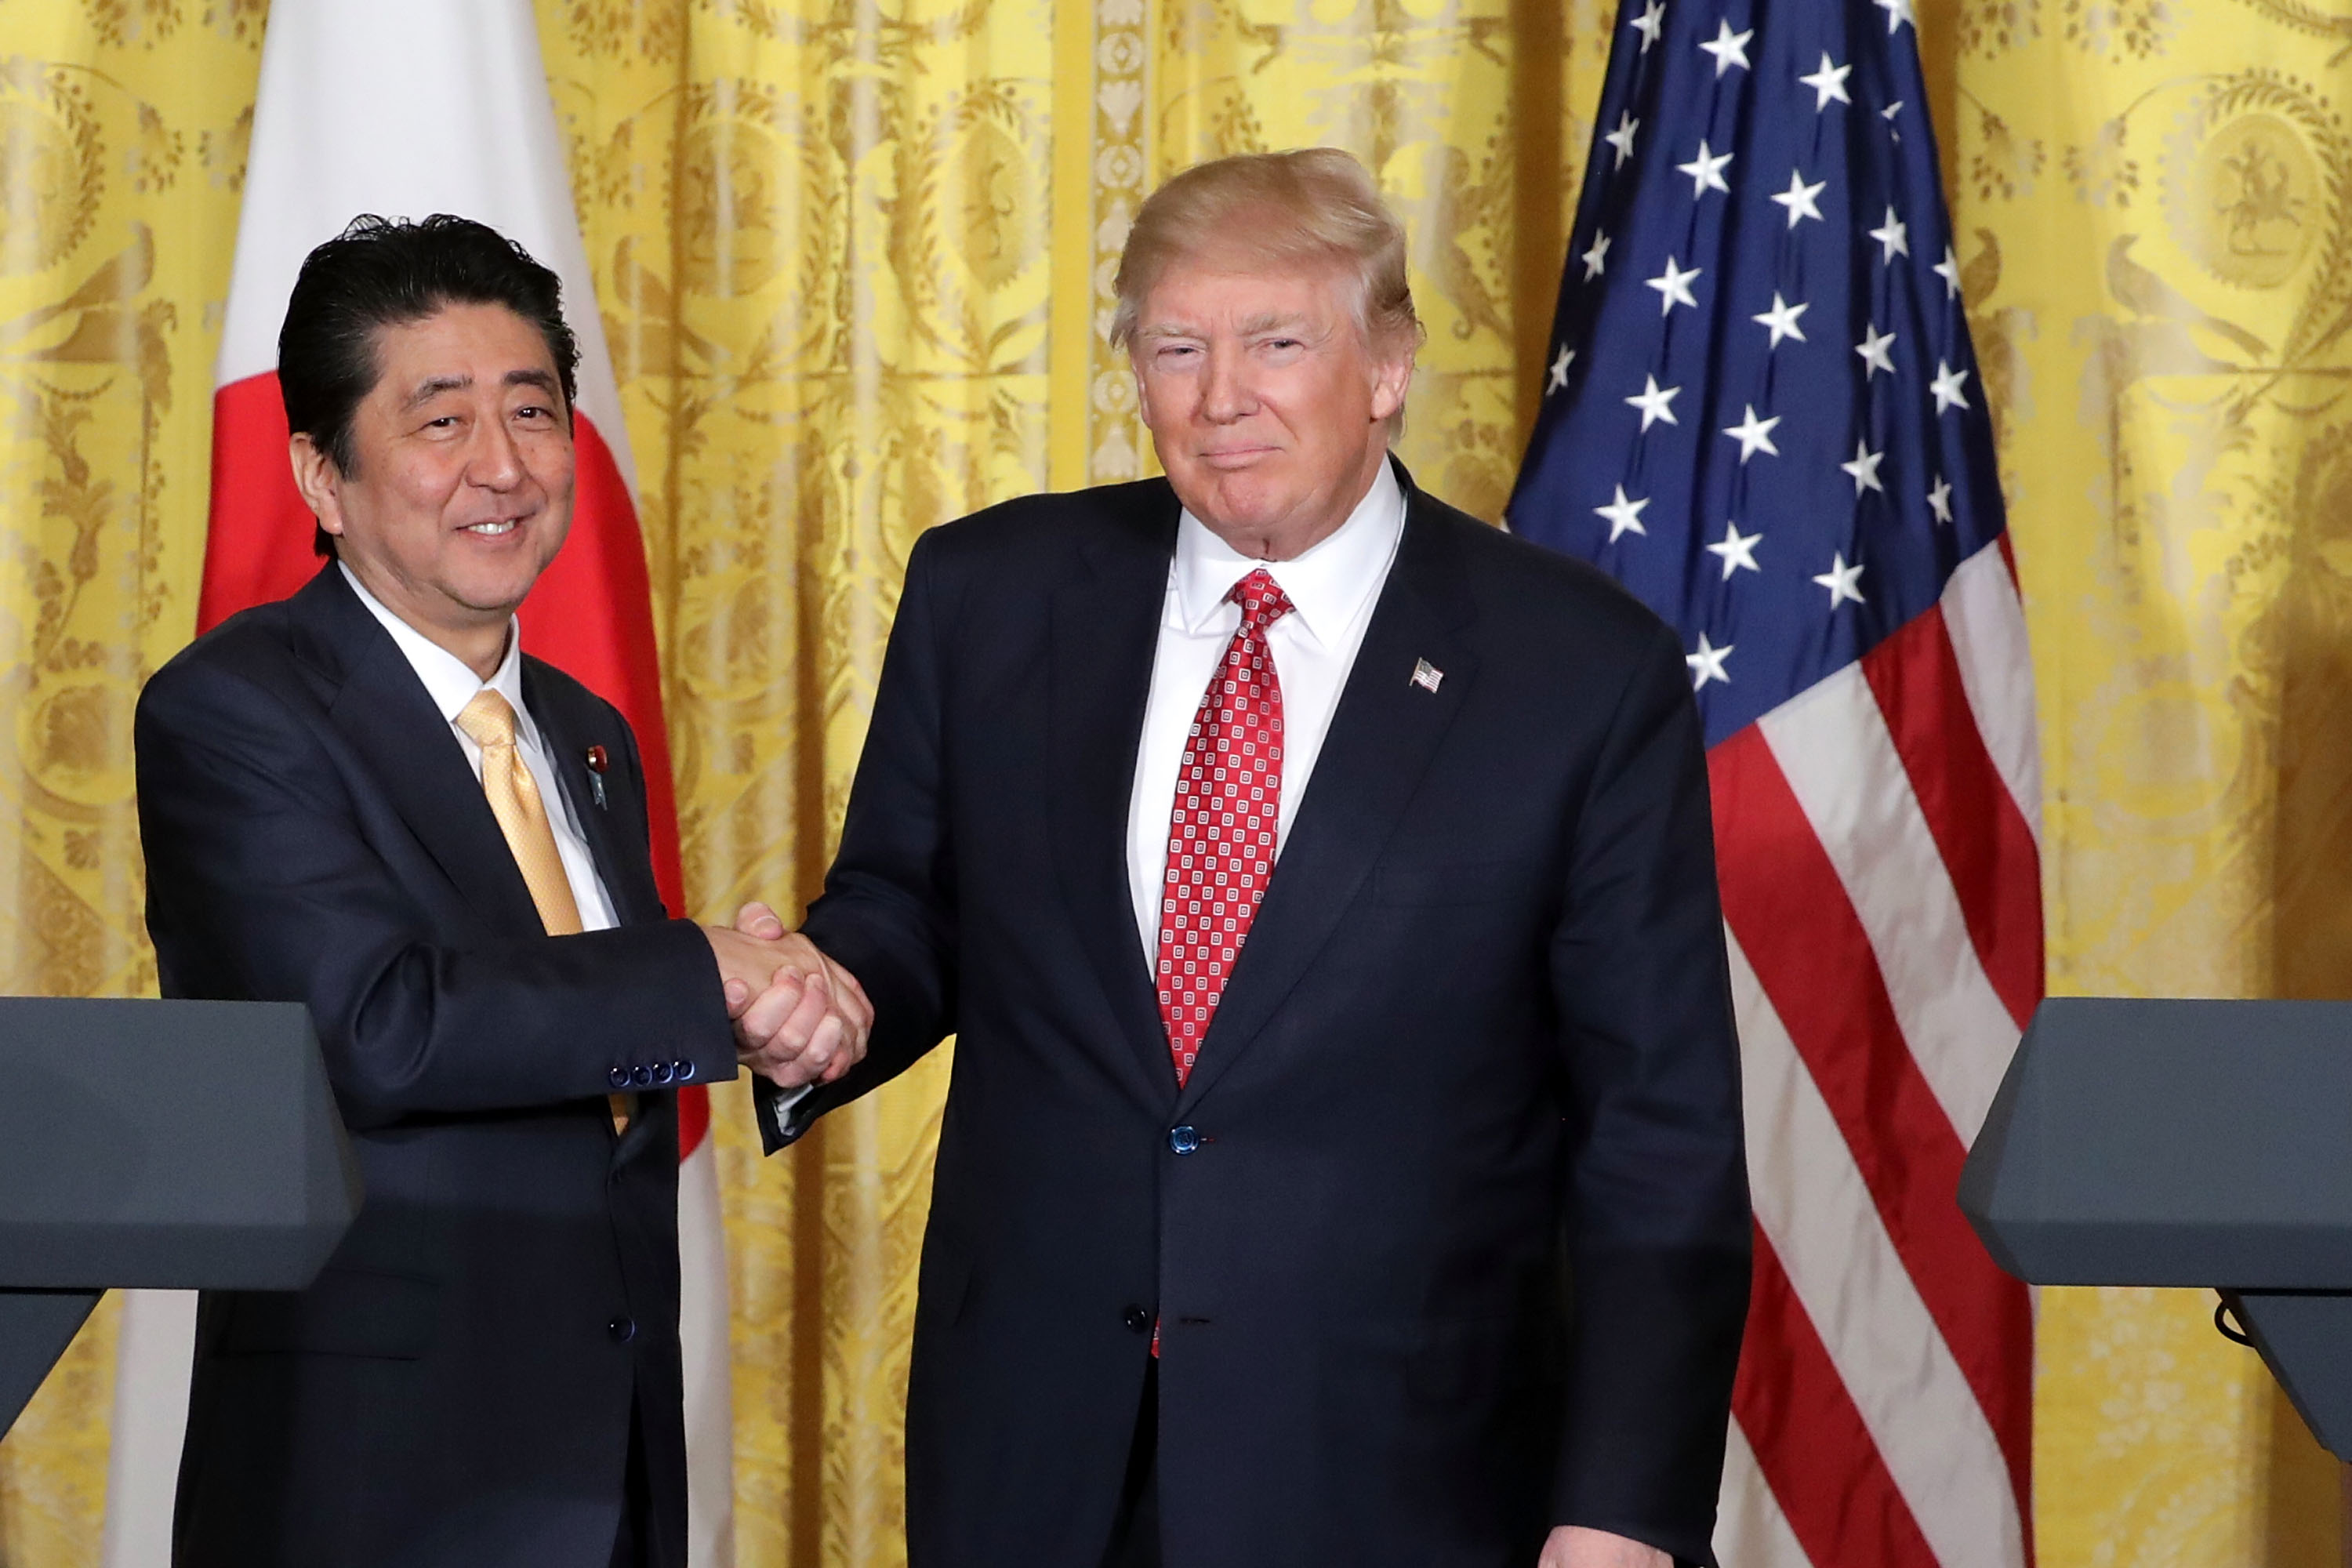 U.S. President Donald Trump and Japanese Prime Minister Shinzo Abe shake hands at the conclusion of a joint news conference in the East Room at the White House February 10, 2017 in Washington, DC.